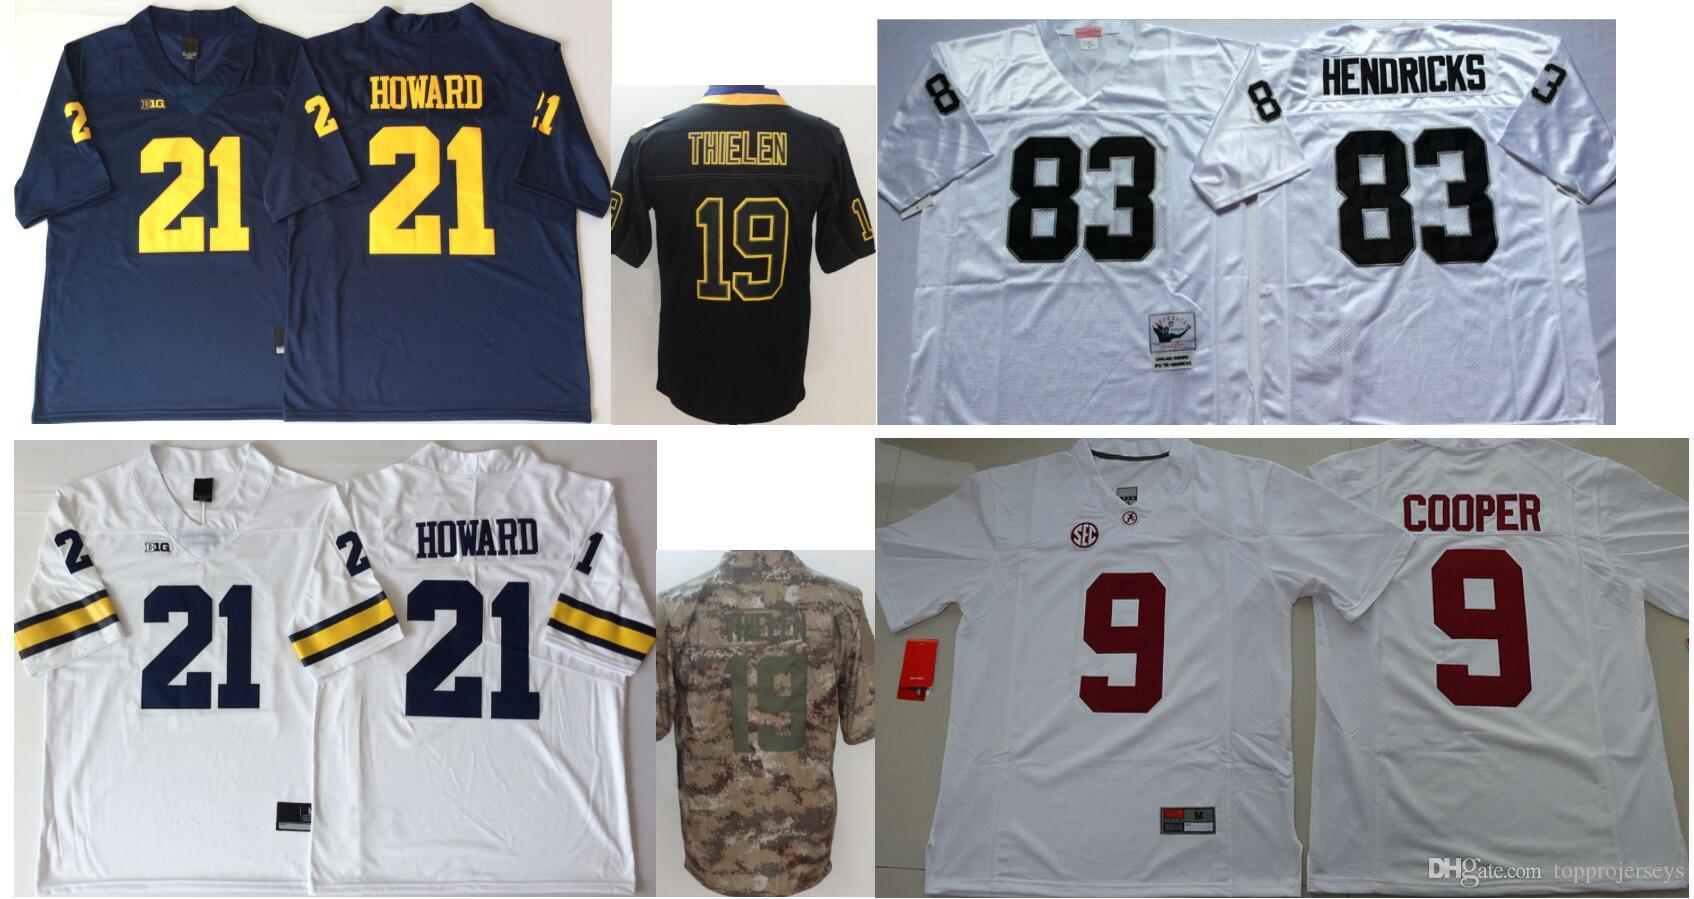 huge discount 7244a a9a6c Michigan Wolverines #21 Desmond Howard Mens Vintage College Minnesota 19  Adam Thielen 83 Ted Hendricks Color Rush American Football Jerseys